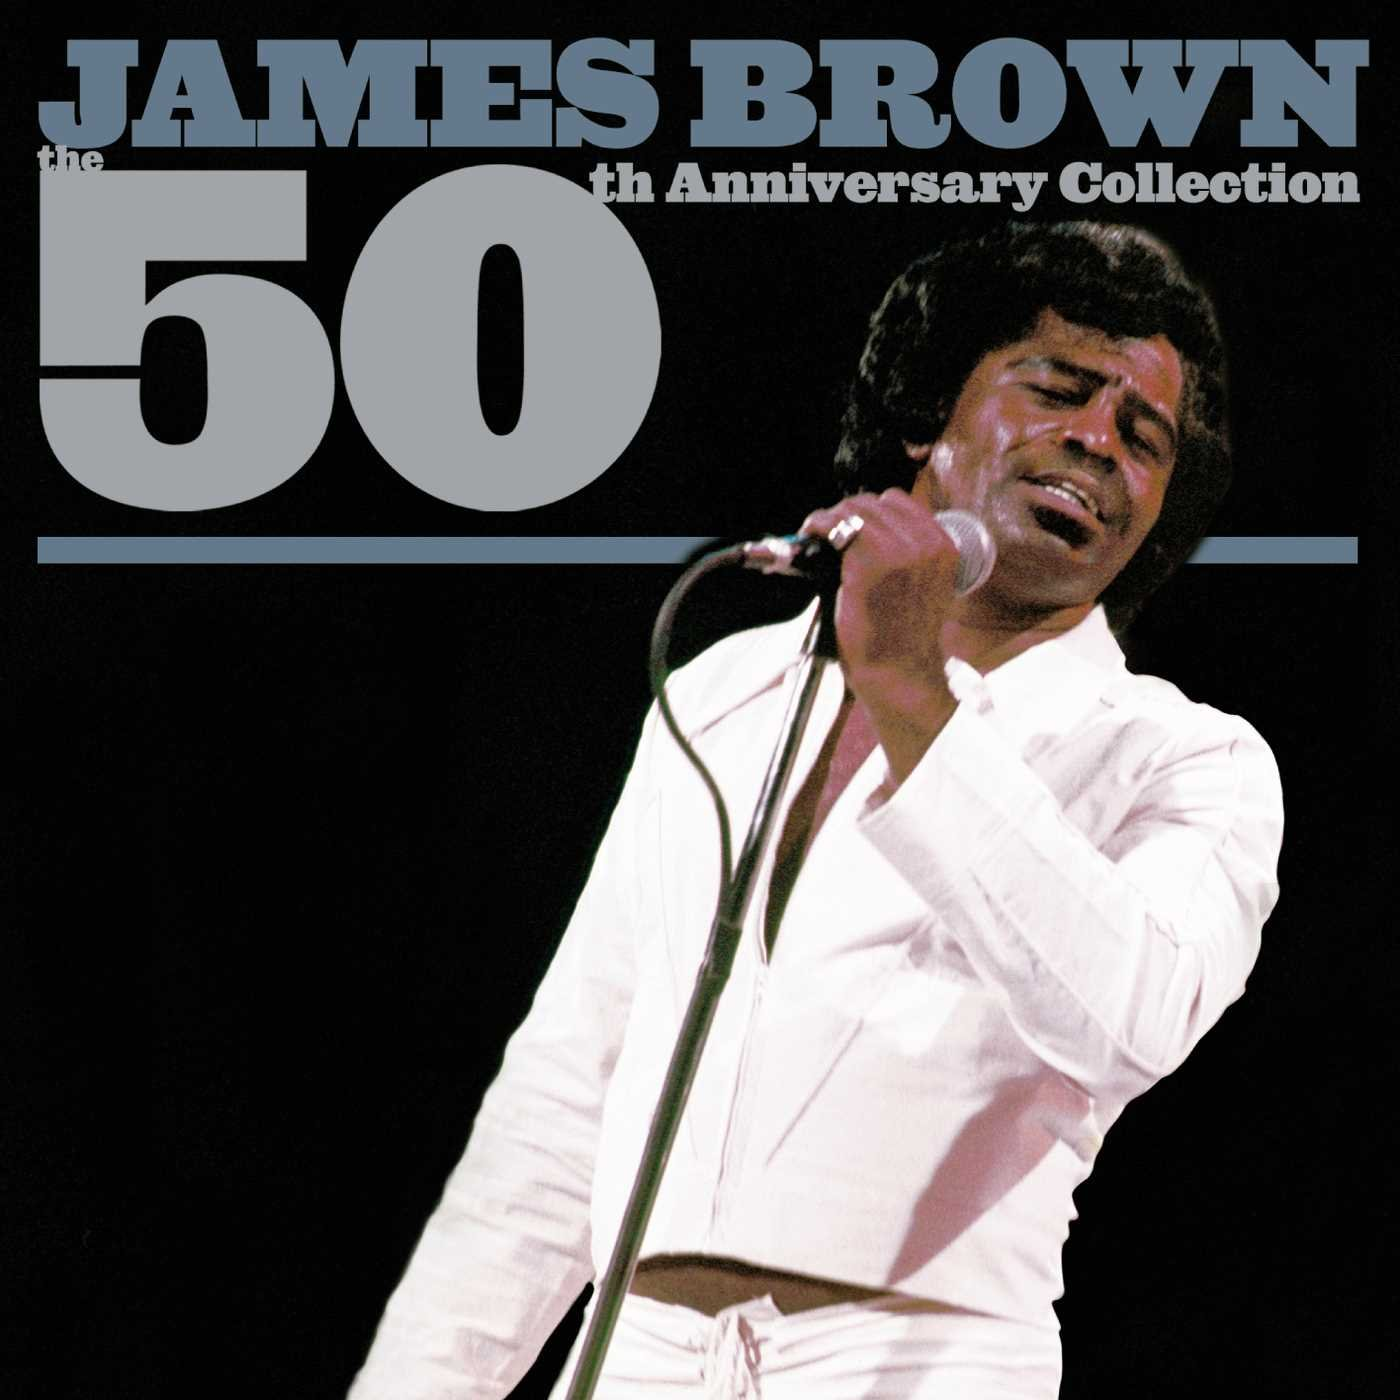 James Brown: 50th Anniversary Collection by Utv